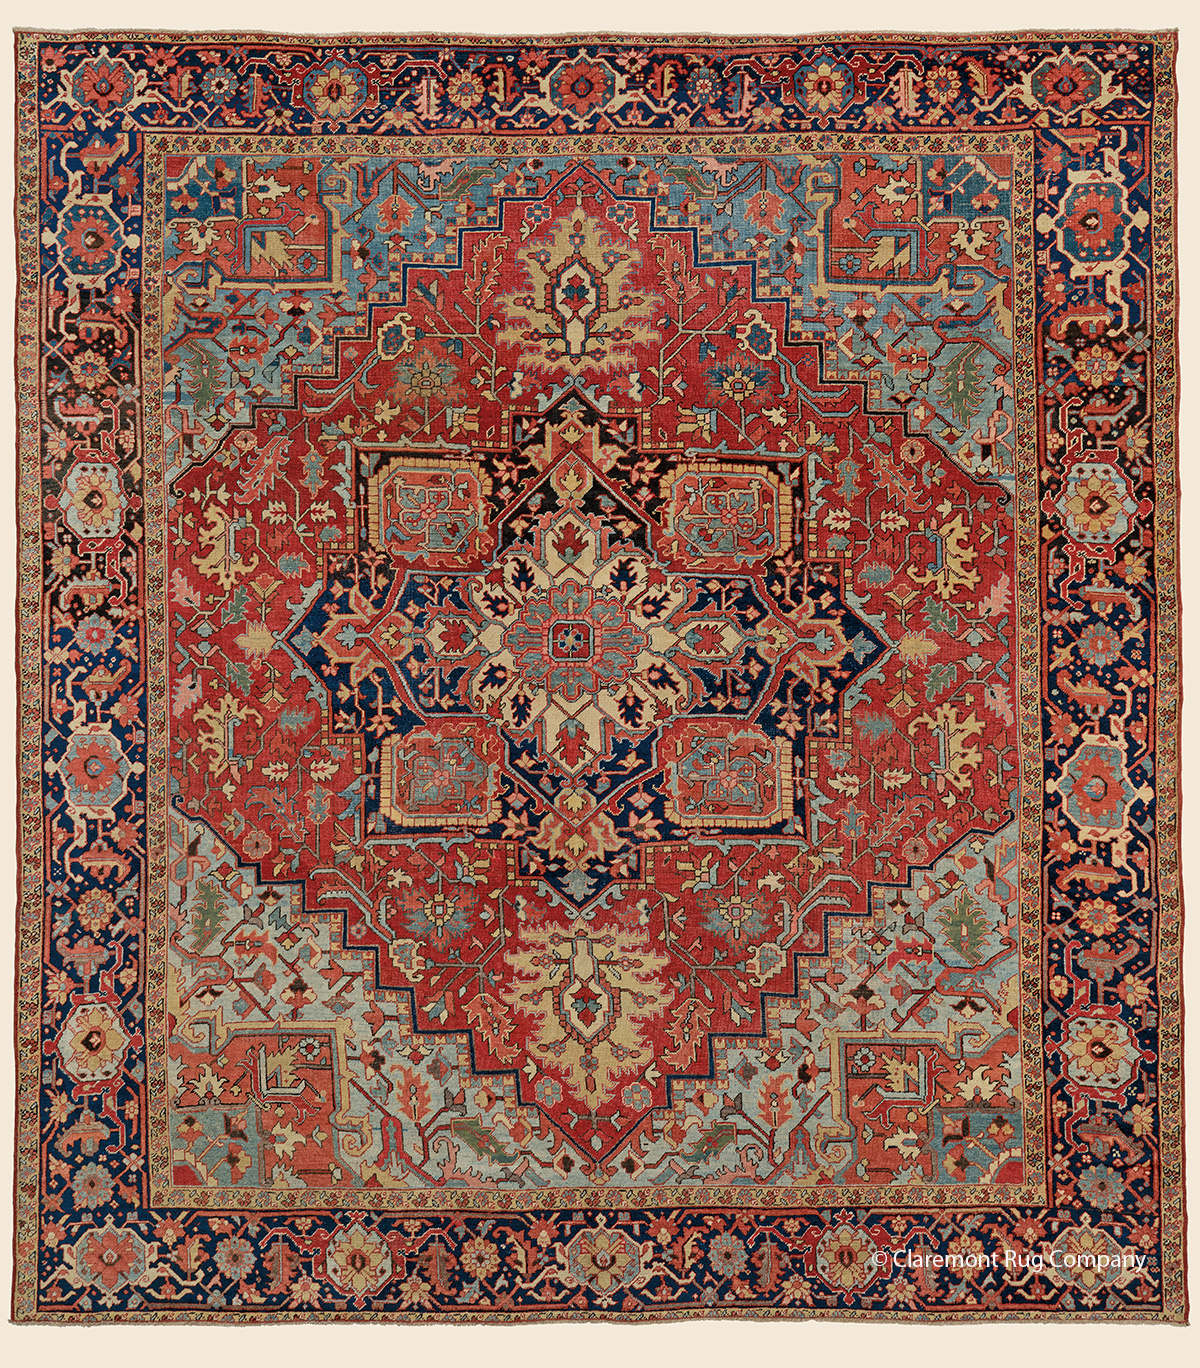 19th century Antique Persian Heriz room size carpet 10ft x 11ft with floral design and abrash ground